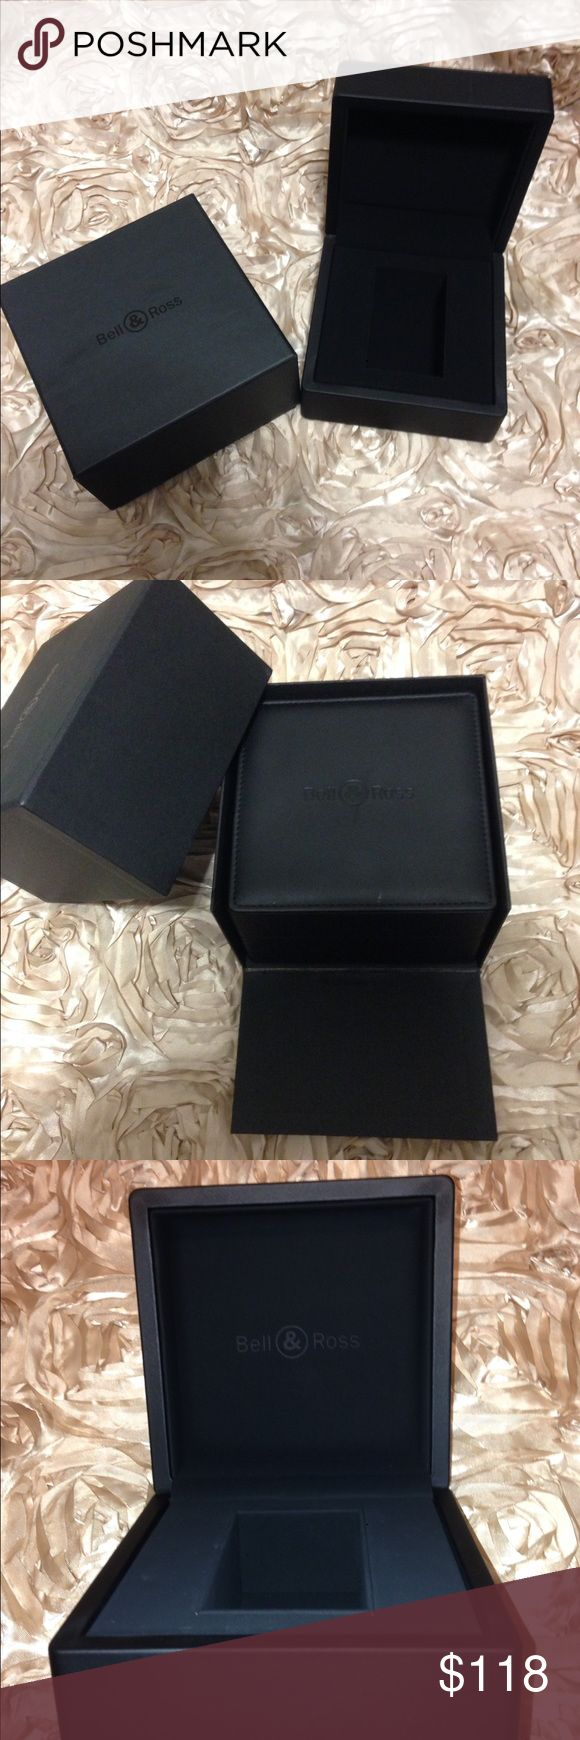 BELL & ROSS Black Watch Box Case 100% Authentic BELL & ROSS Black Watch Box Case 100% Authentic Swiss New Inner and Outer. Perfect condition! Bell & Ross Other